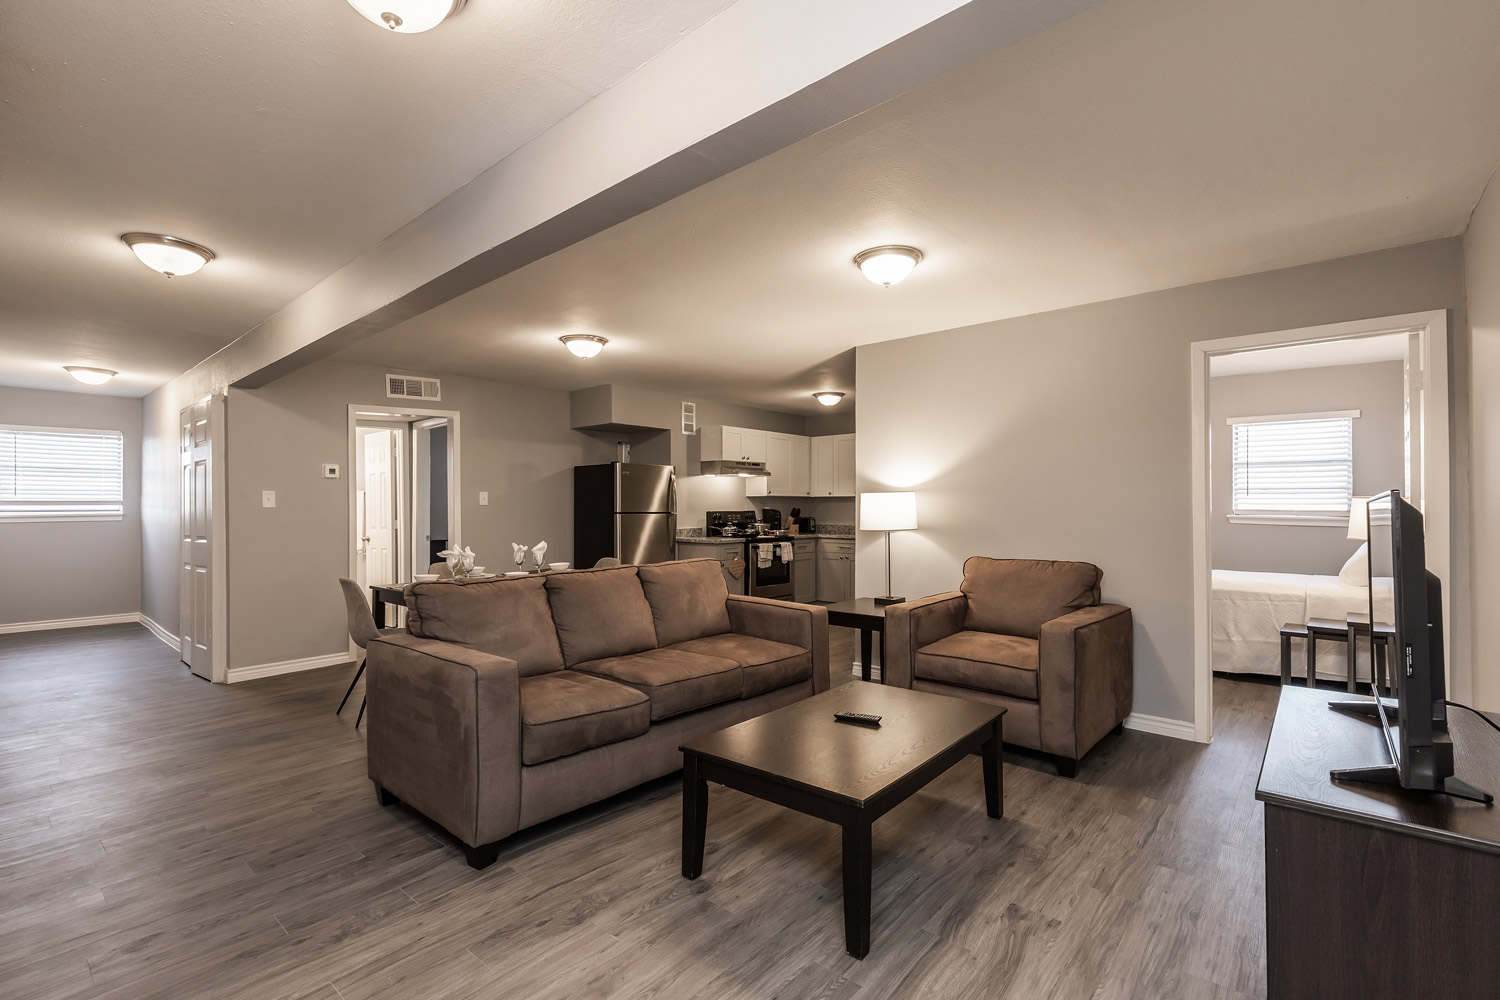 Large Floor Plans at The Five Points at Texas Apartments in Texas City, Texas